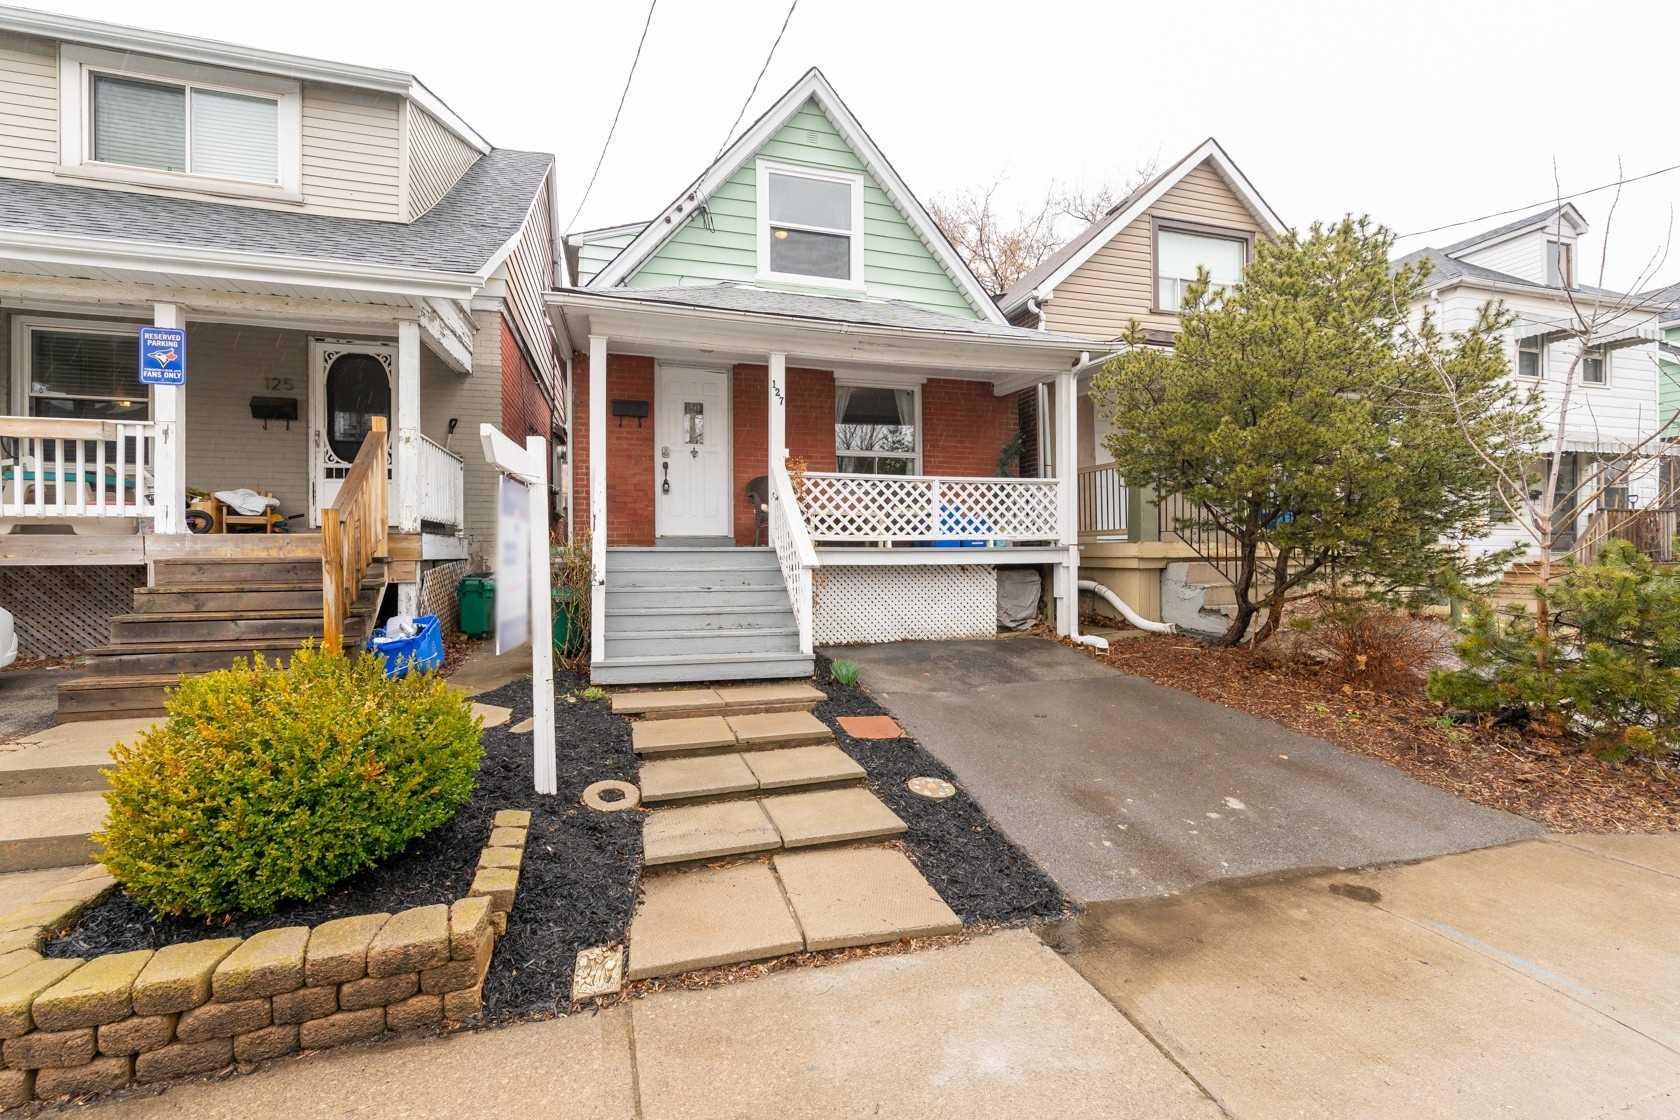 pictures of house for sale MLS: X4730256 located at 127 London St N, Hamilton L8H4B6